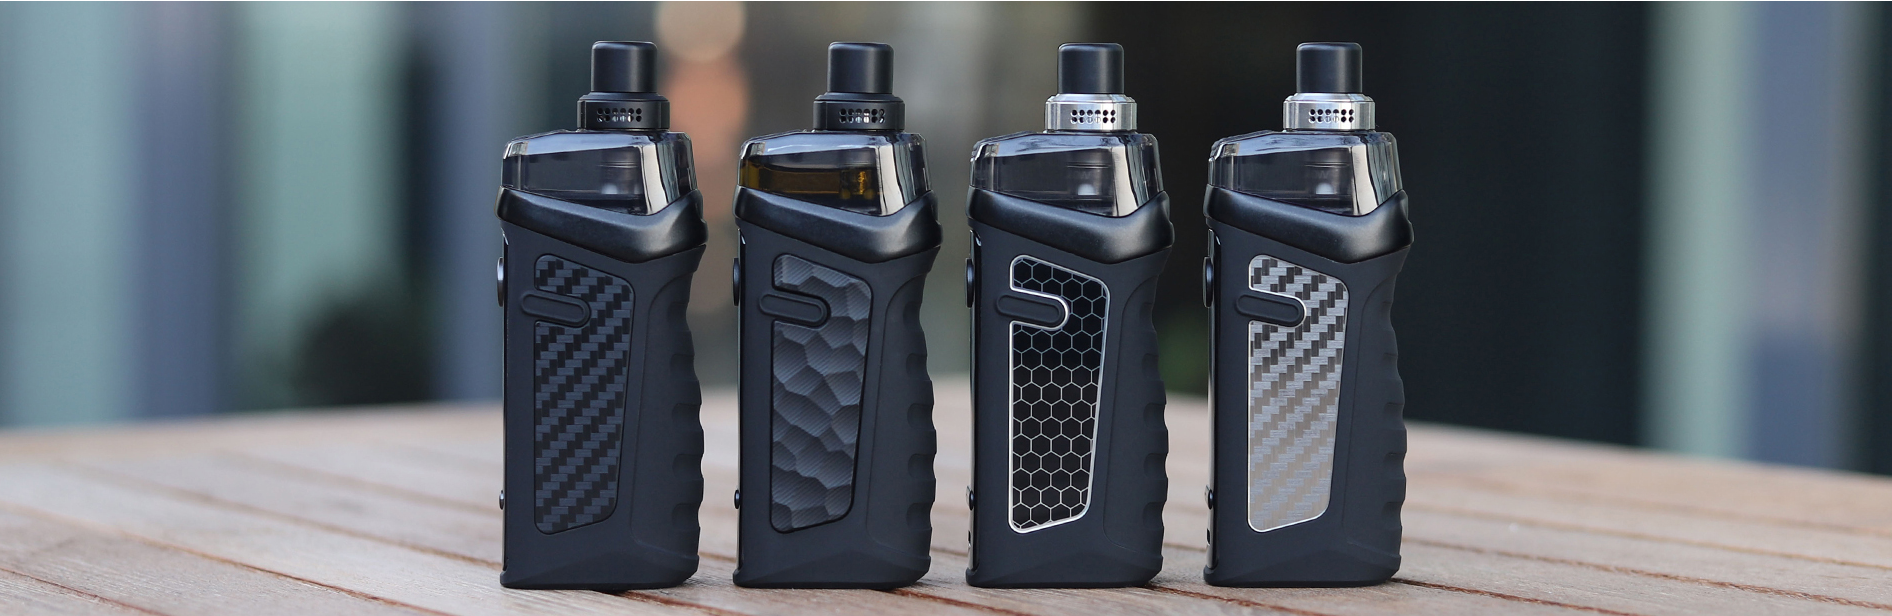 Four Vandy Vape pod devices sitting on a surface outside.